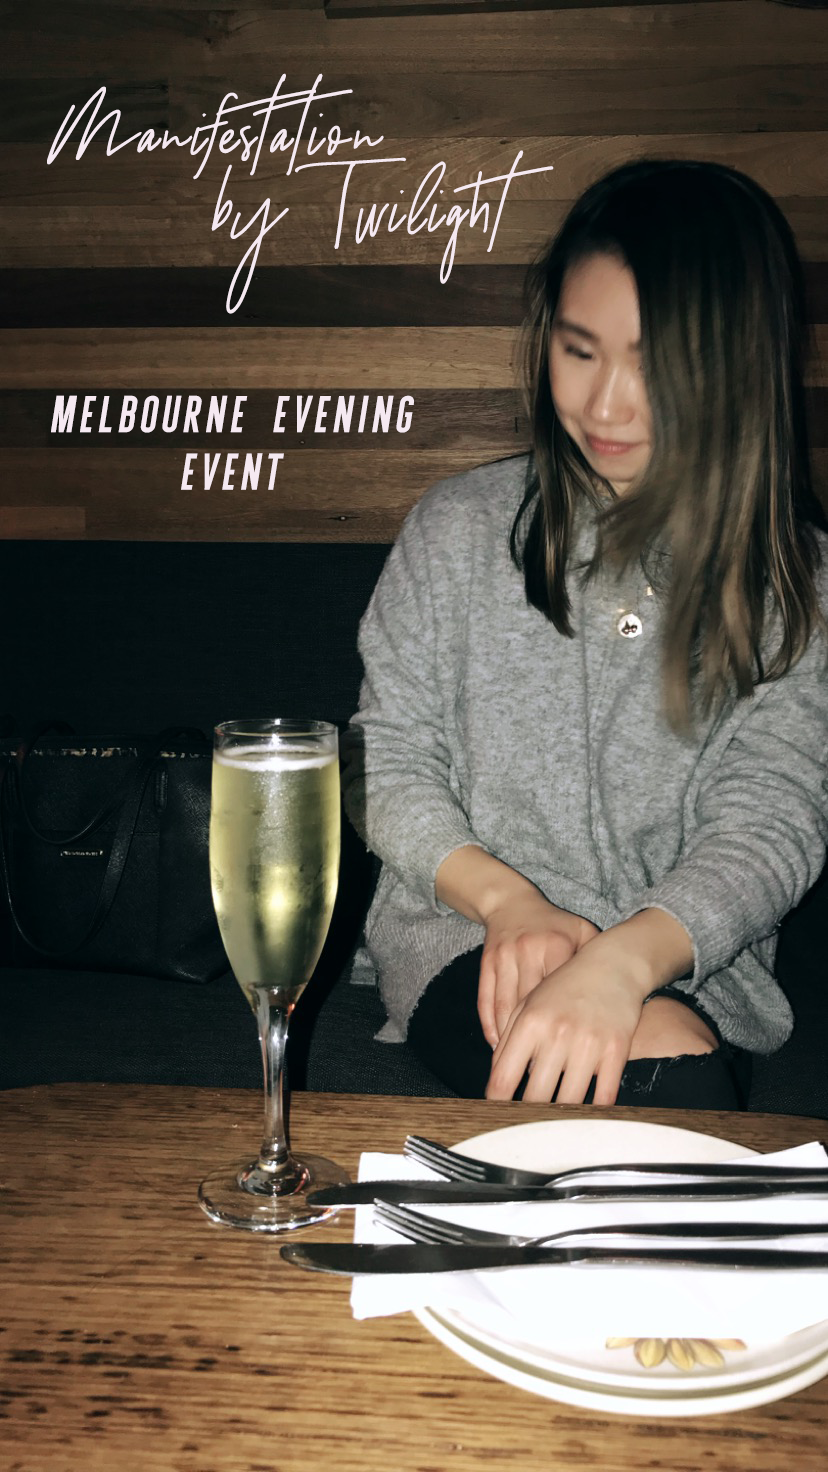 Manifestation By Twilight - A melbourne evening eventSet intentions + goals for successful manifestations.